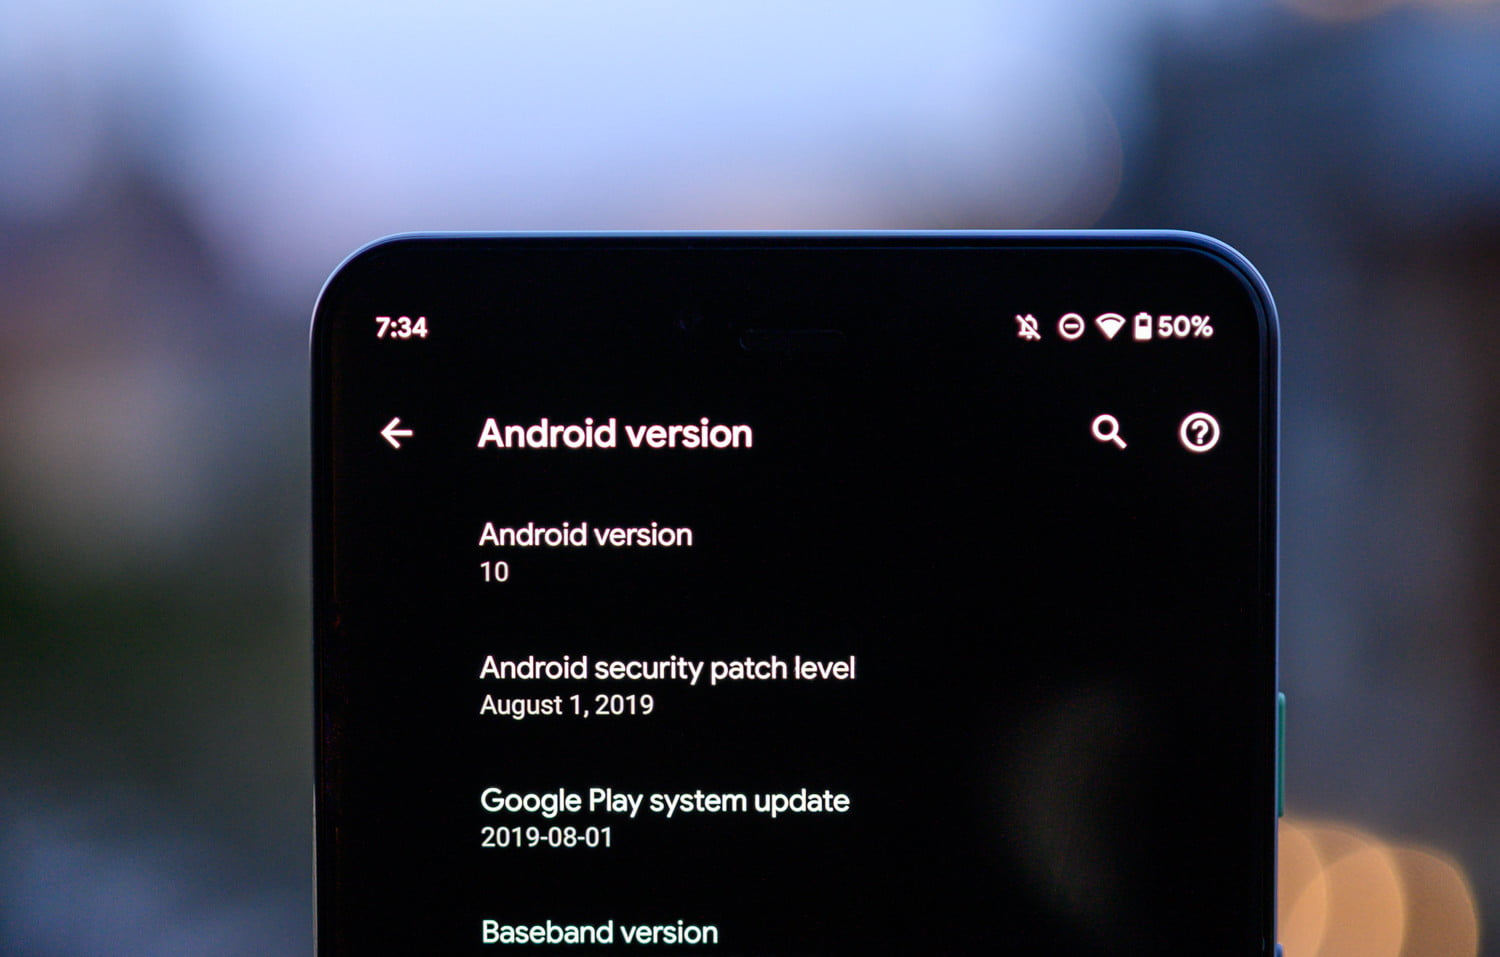 How to Check the Current Android Version on Your Smartphone